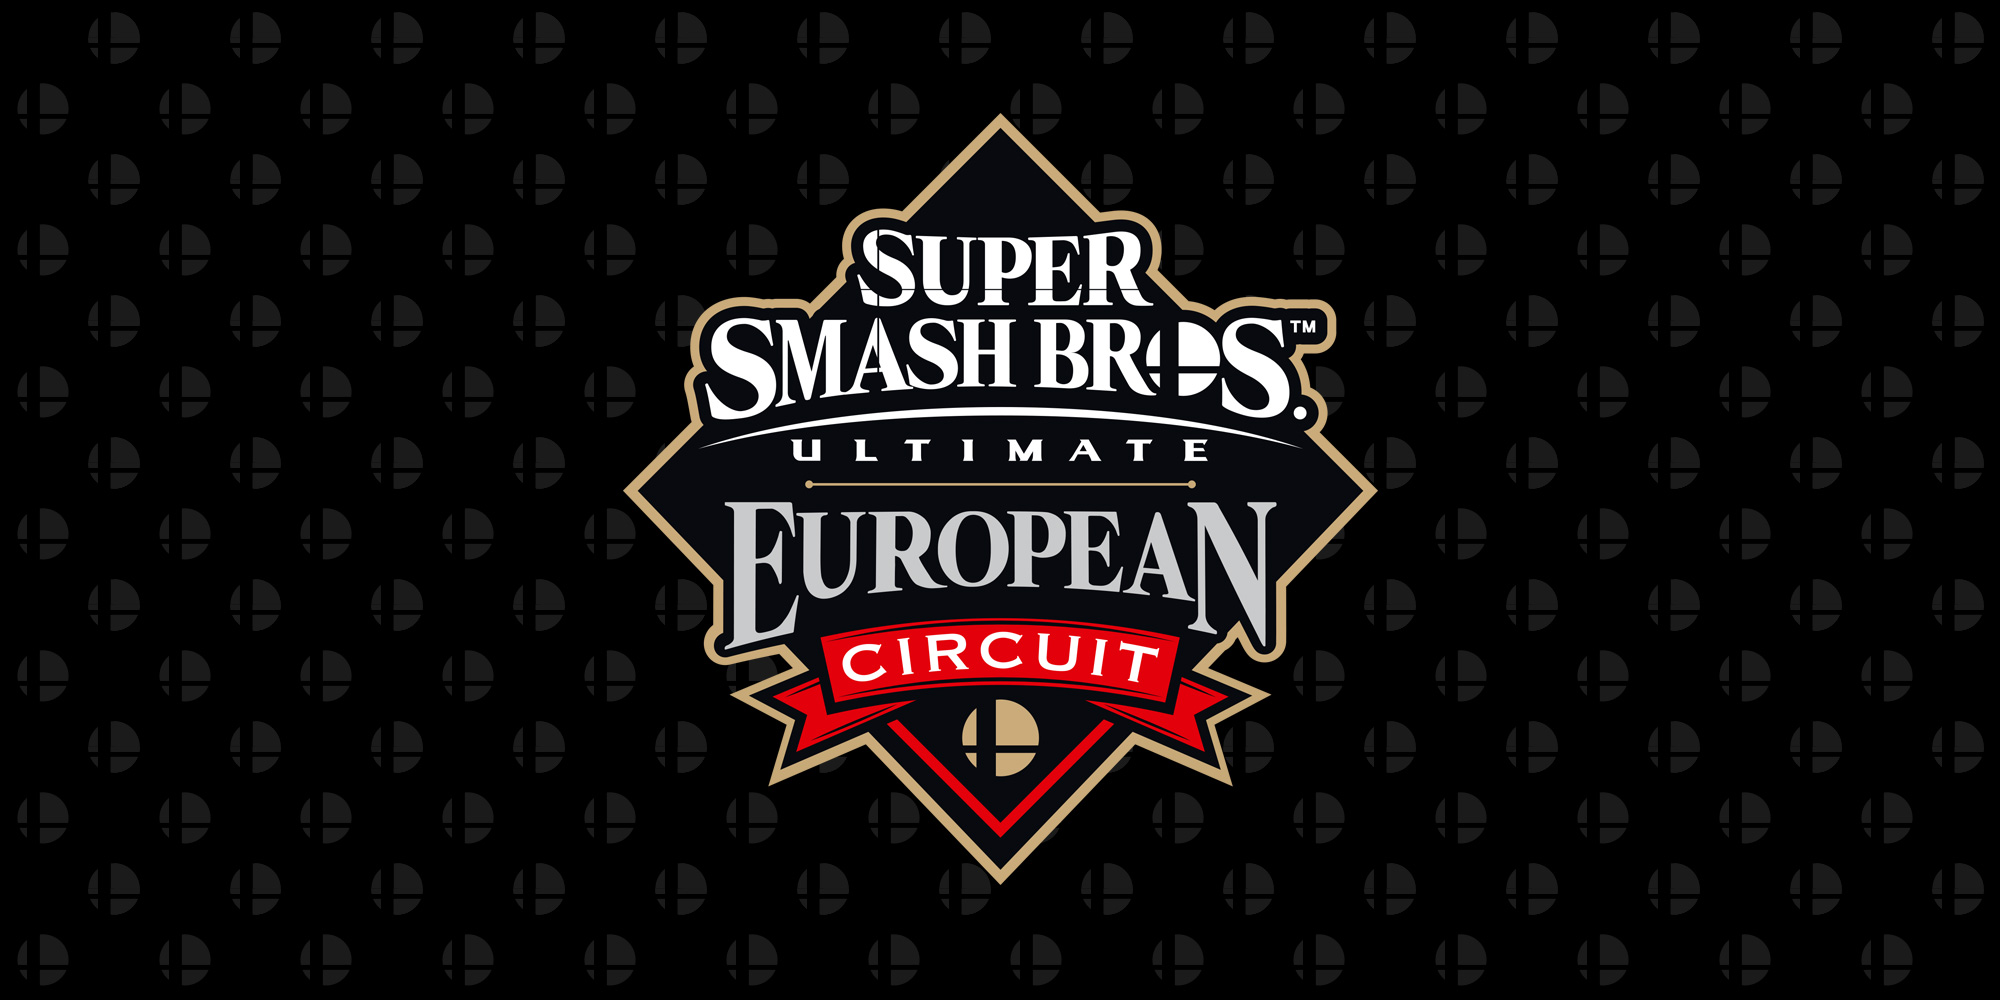 DarkThunder ist der Champion der DreamHack Leipzig, dem vierten Event des Super Smash Bros. Ultimate European Circuit!